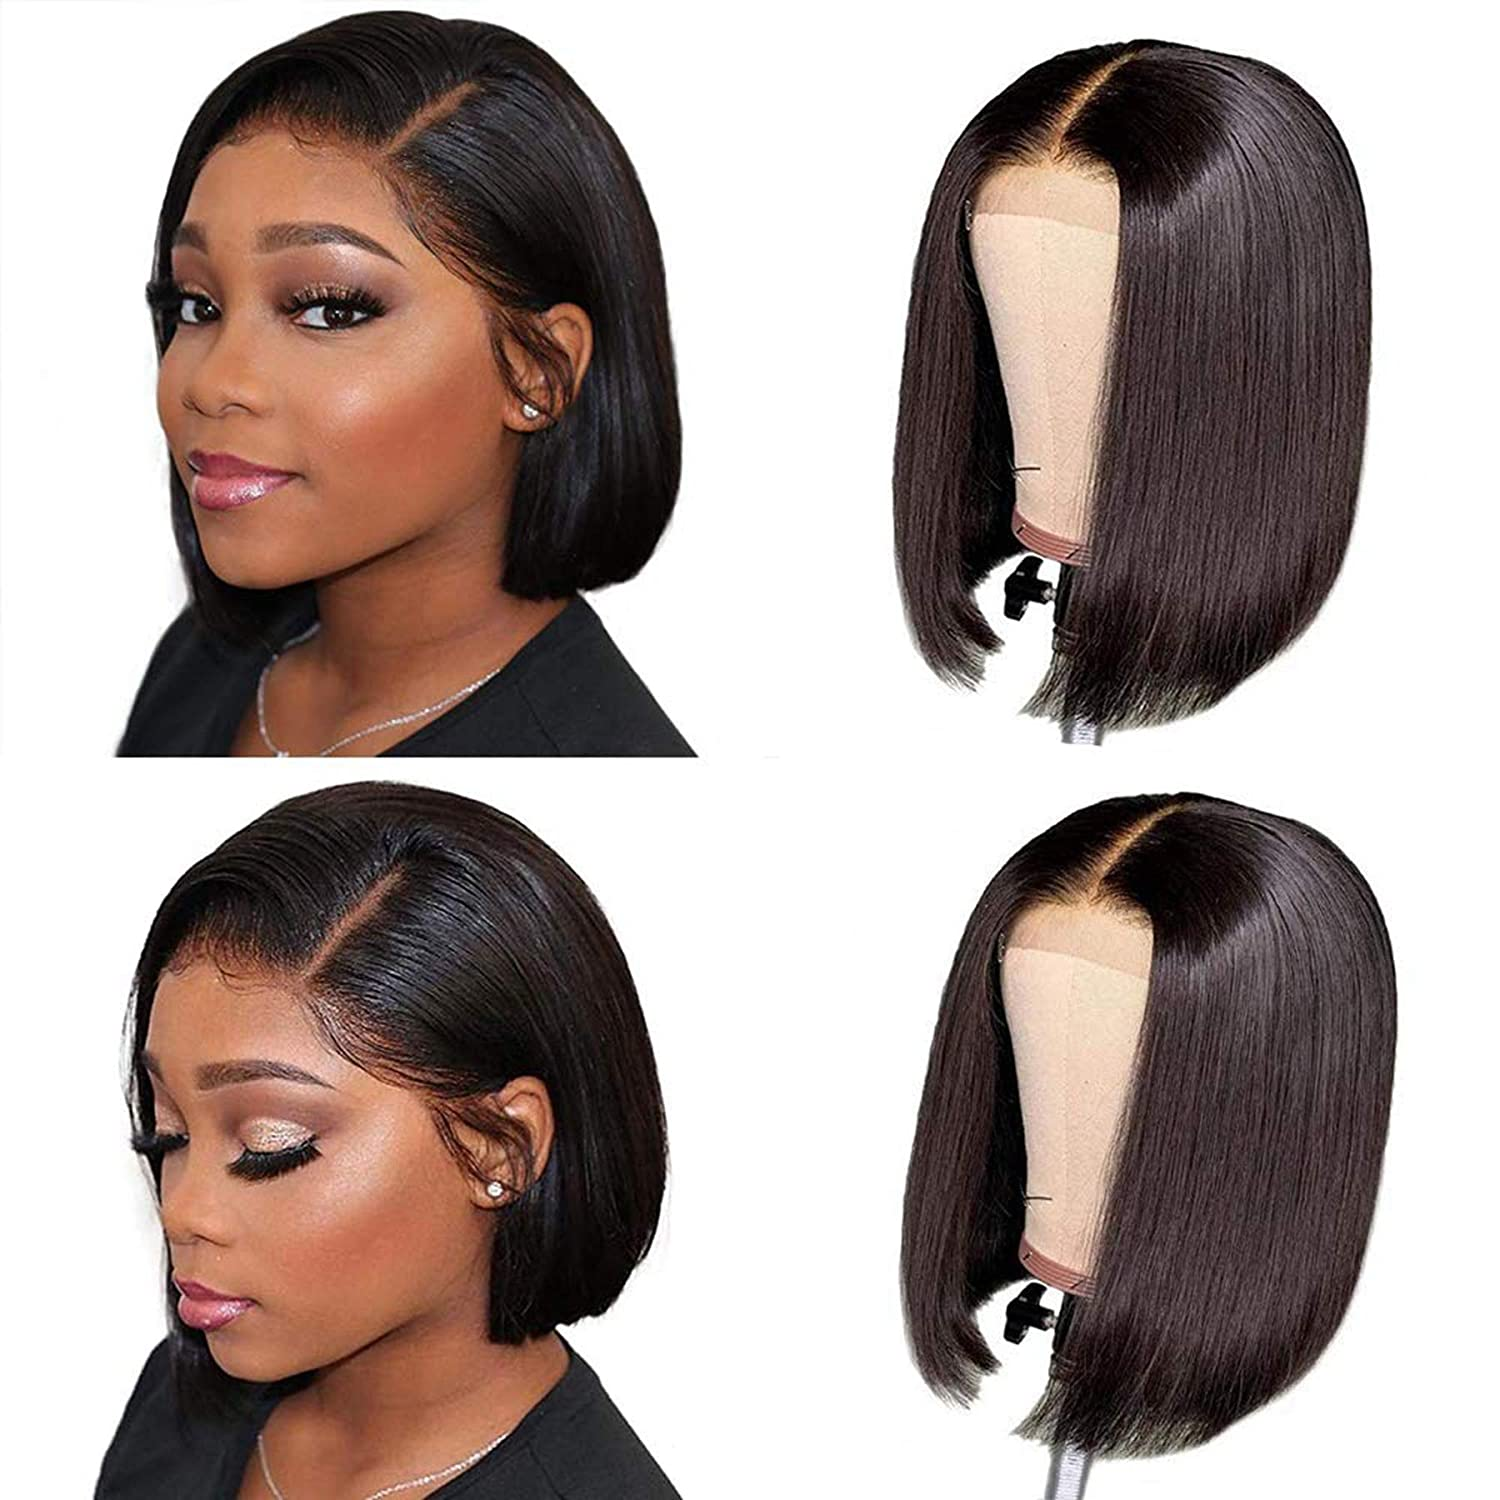 Highligh Density 150 Short Bob Lace Front Human Hair Wigs With Baby Hair Pre Plucked Remy Brazilian 2x6 Lace Wigs Bleached Knots Natural Black 14 Inch Beauty Amazon Com